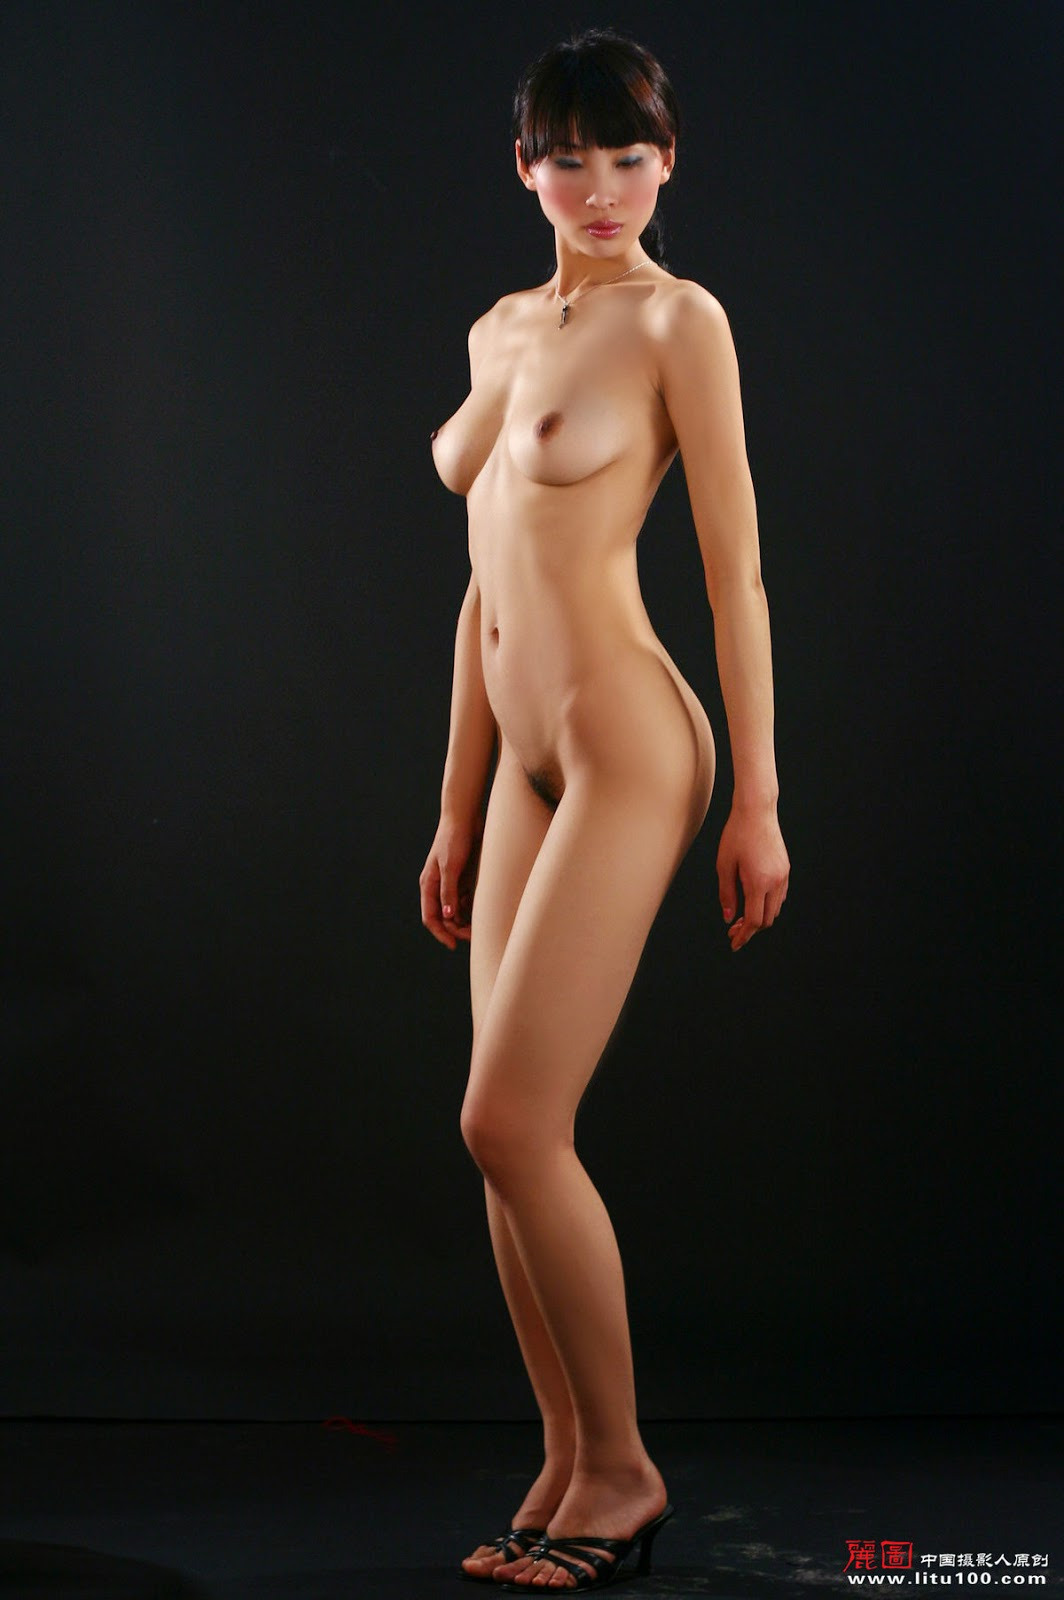 Sexy Chinese Models Nude